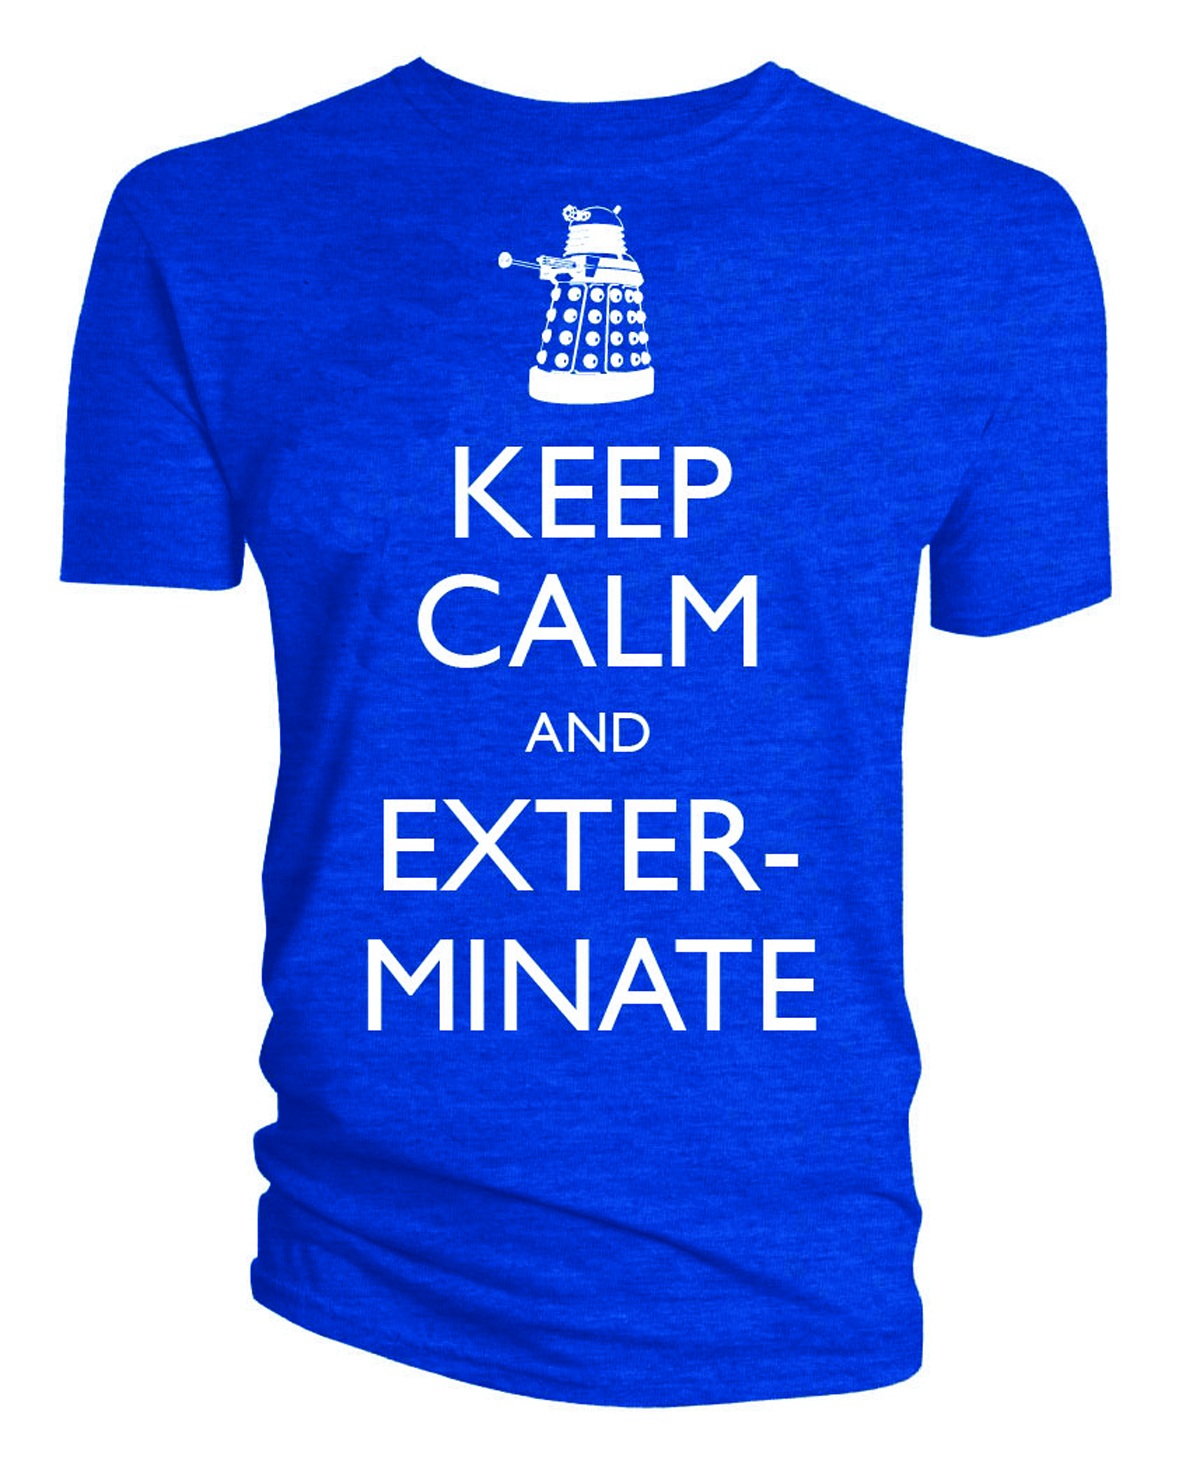 DOCTOR WHO KEEP CALM AND EXTERMINATE T/S LG